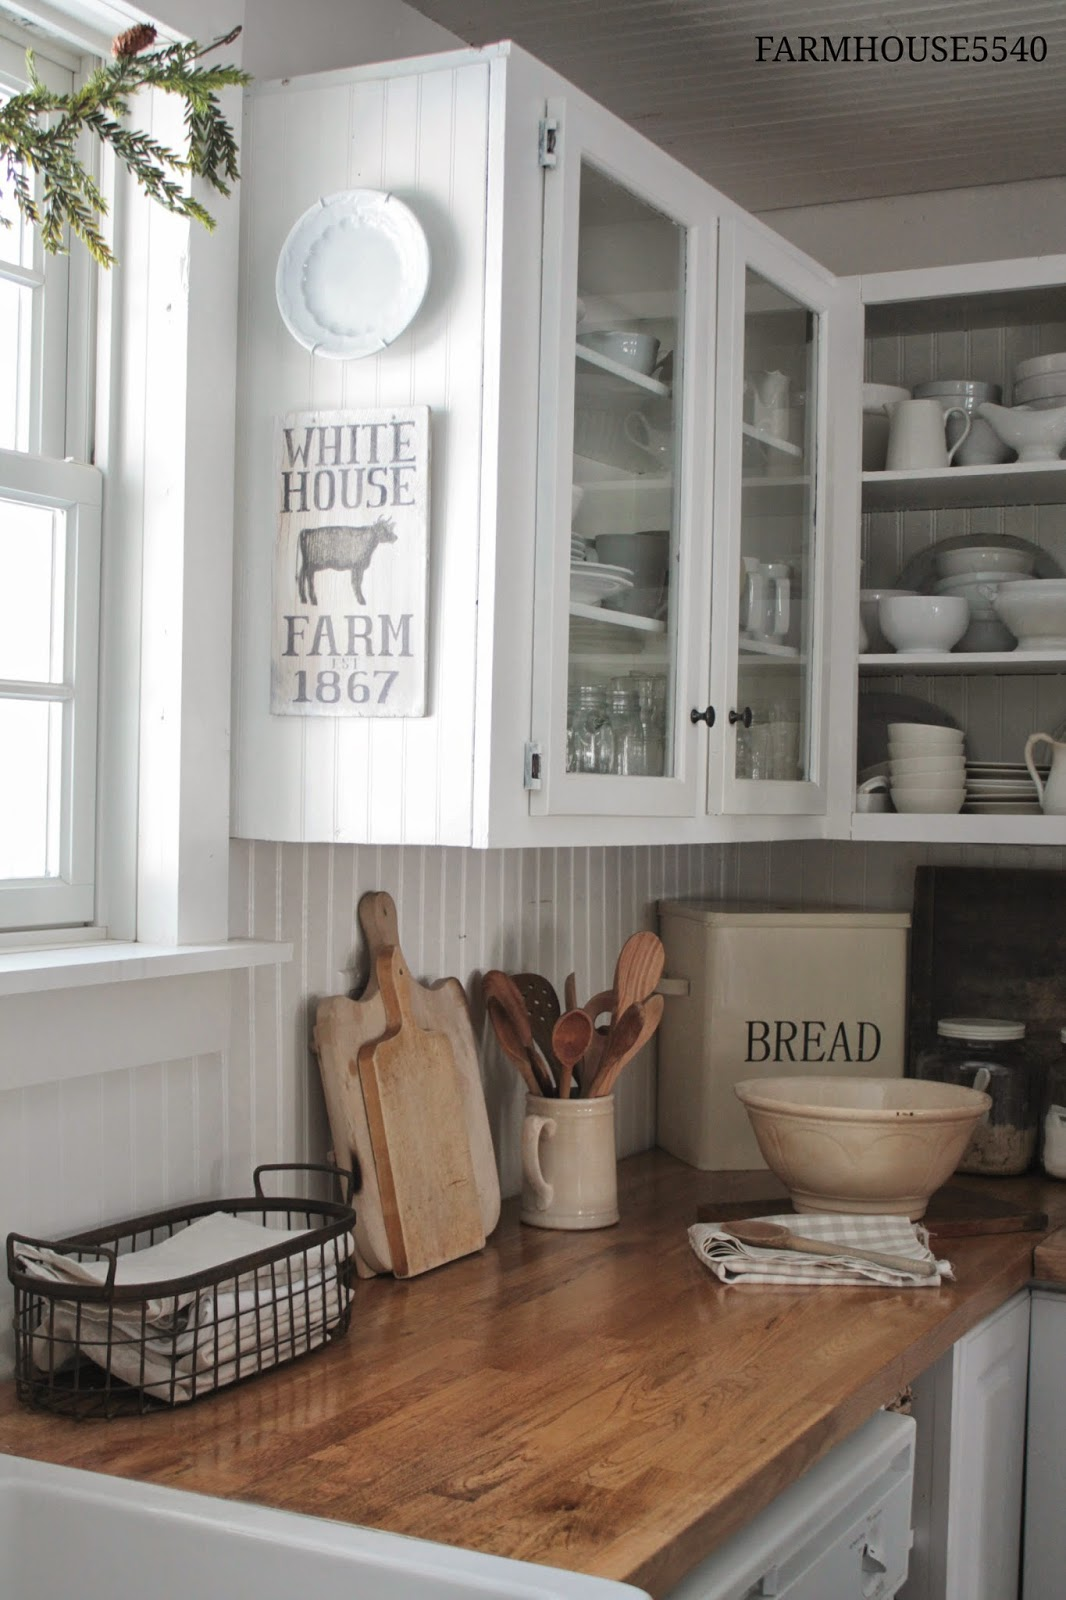 7 ideas for a farmhouse inspired kitchen on a budget - Kitchen decorating ideas on a budget ...